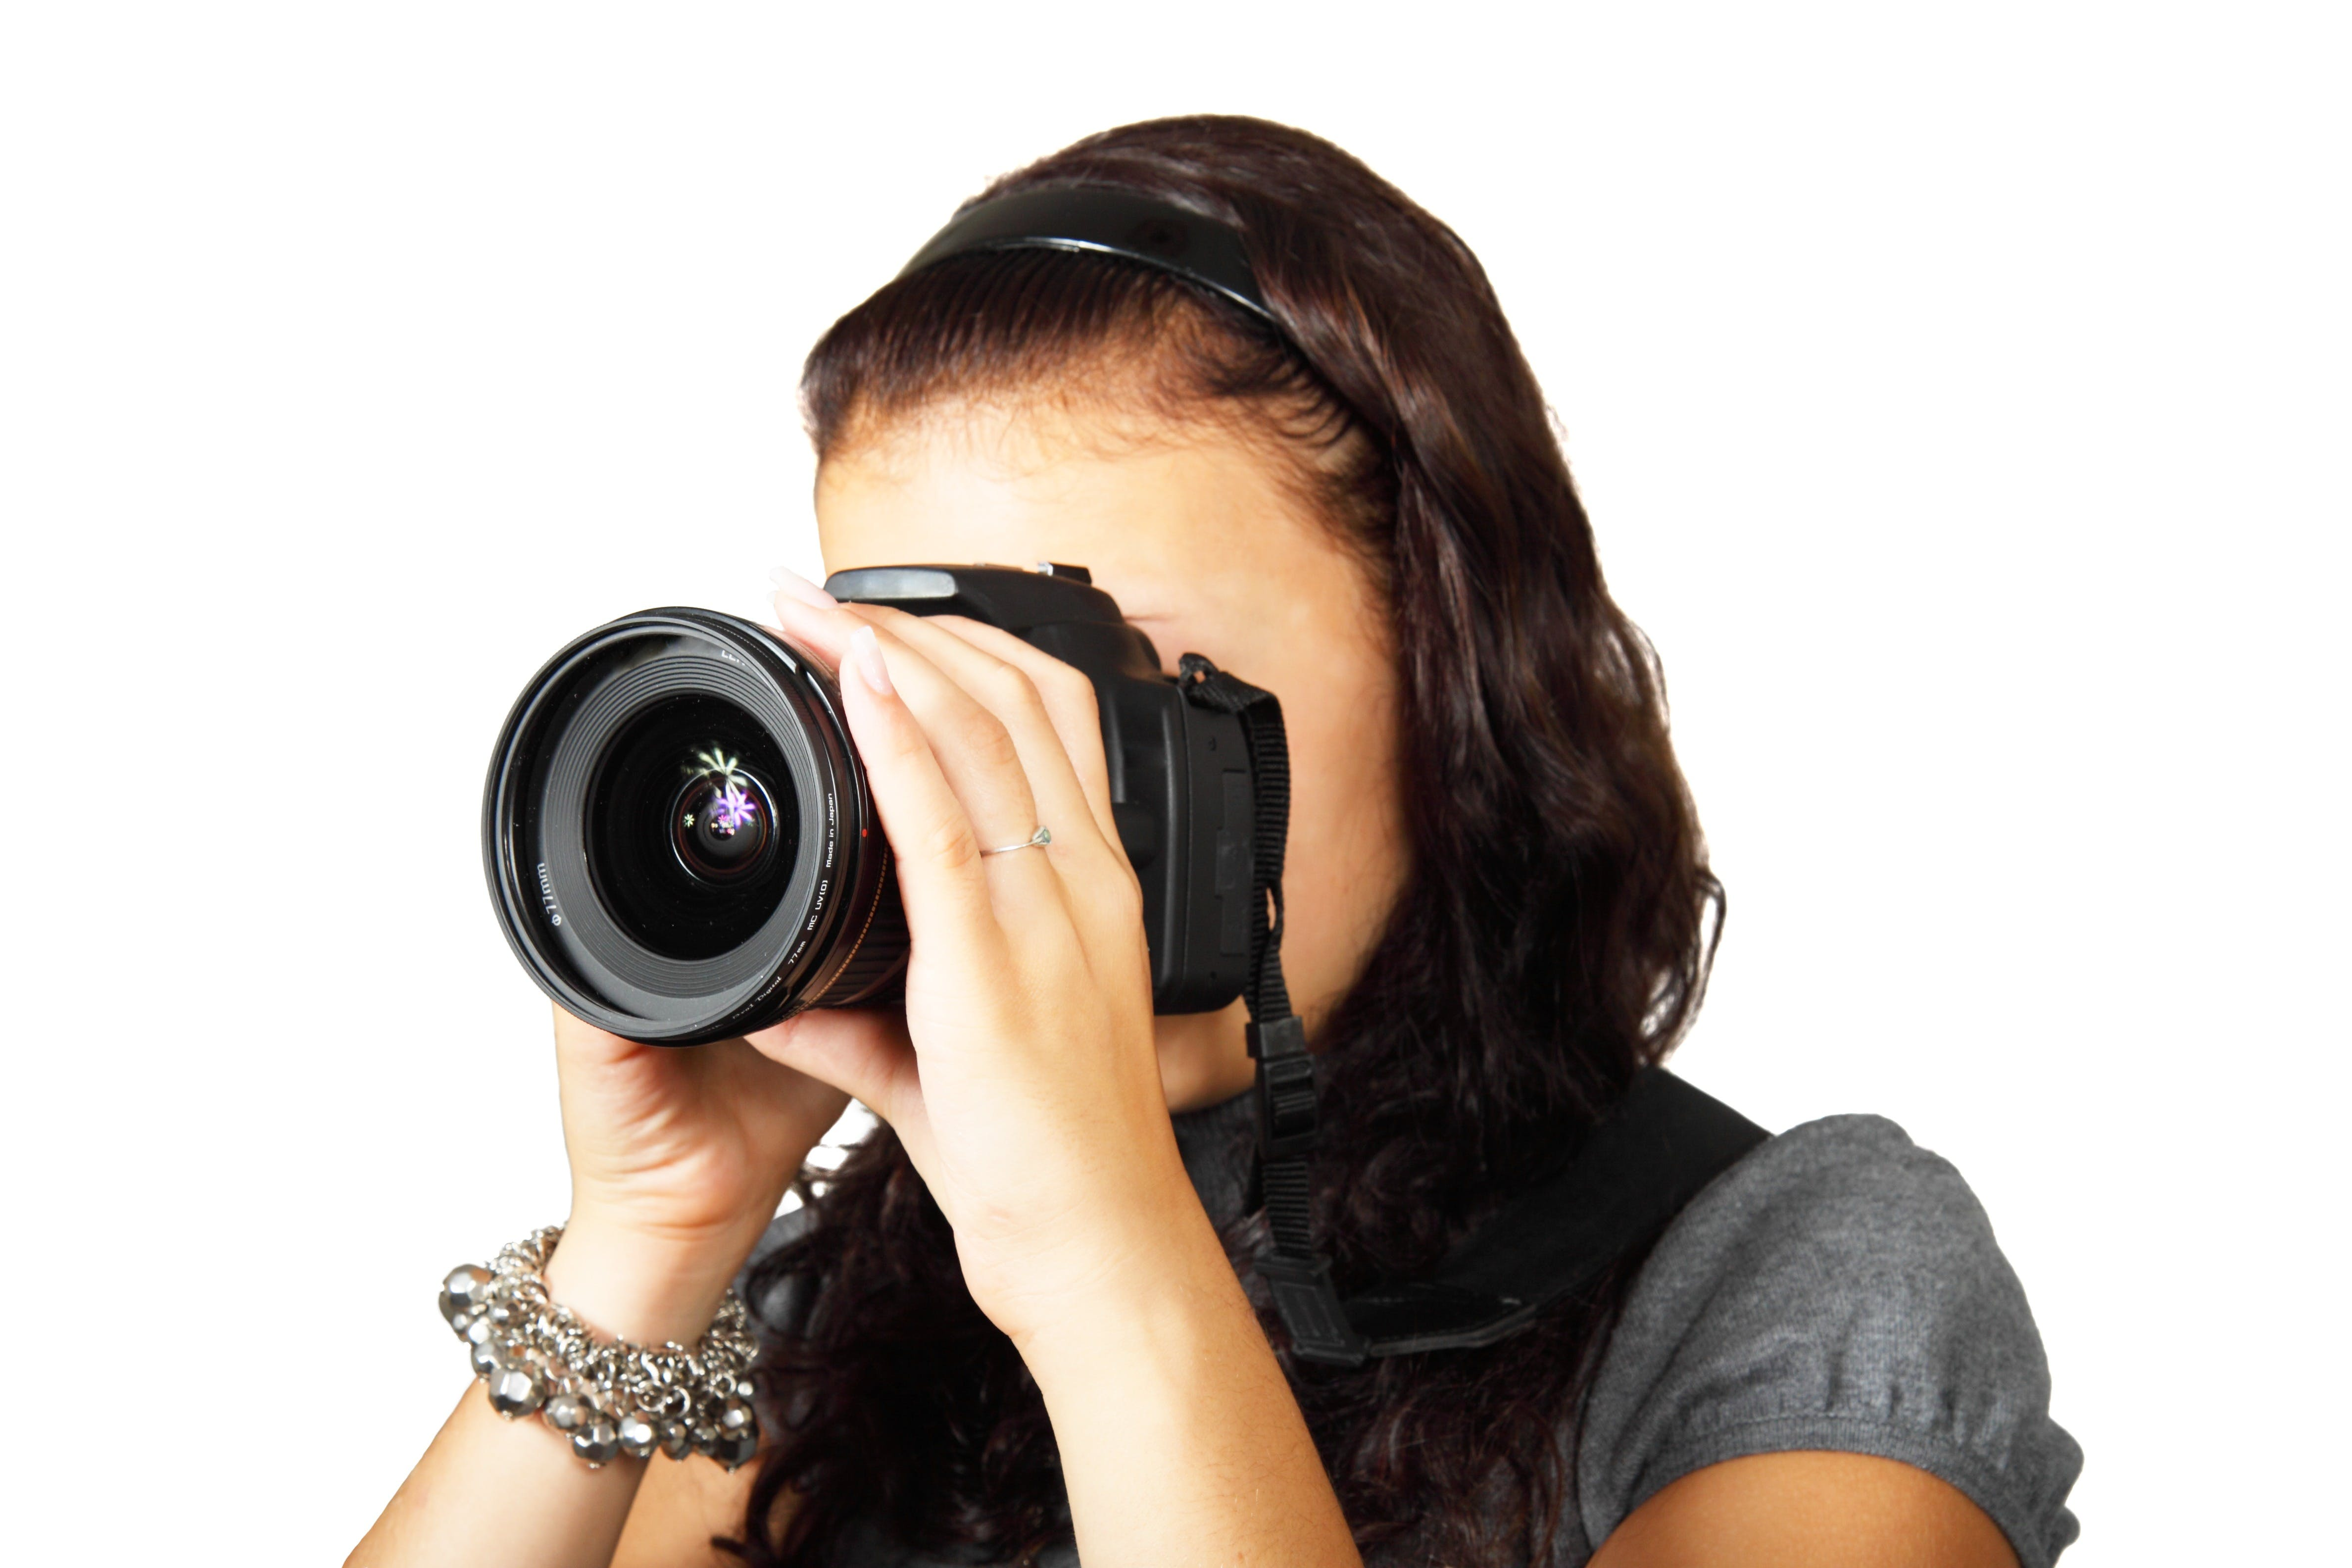 Woman in Grey Shirt Taking Picture With Dslr Camera